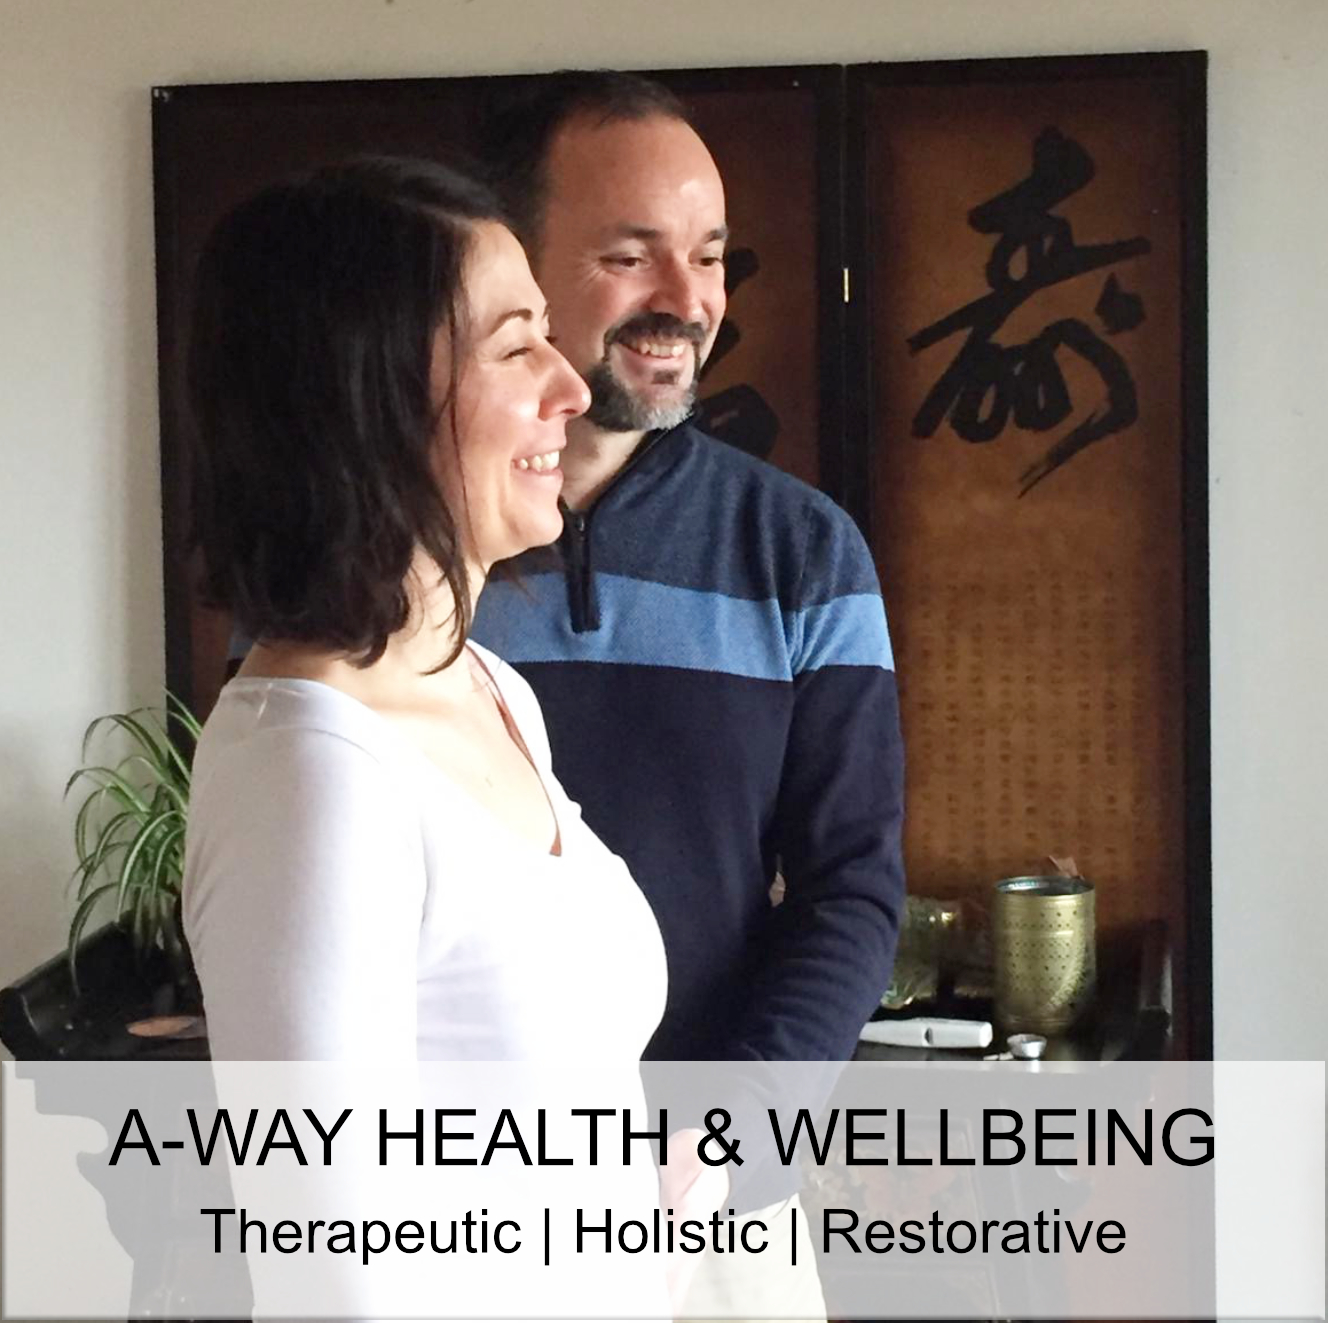 A-Way Health & Wellbeing Class in Chichester